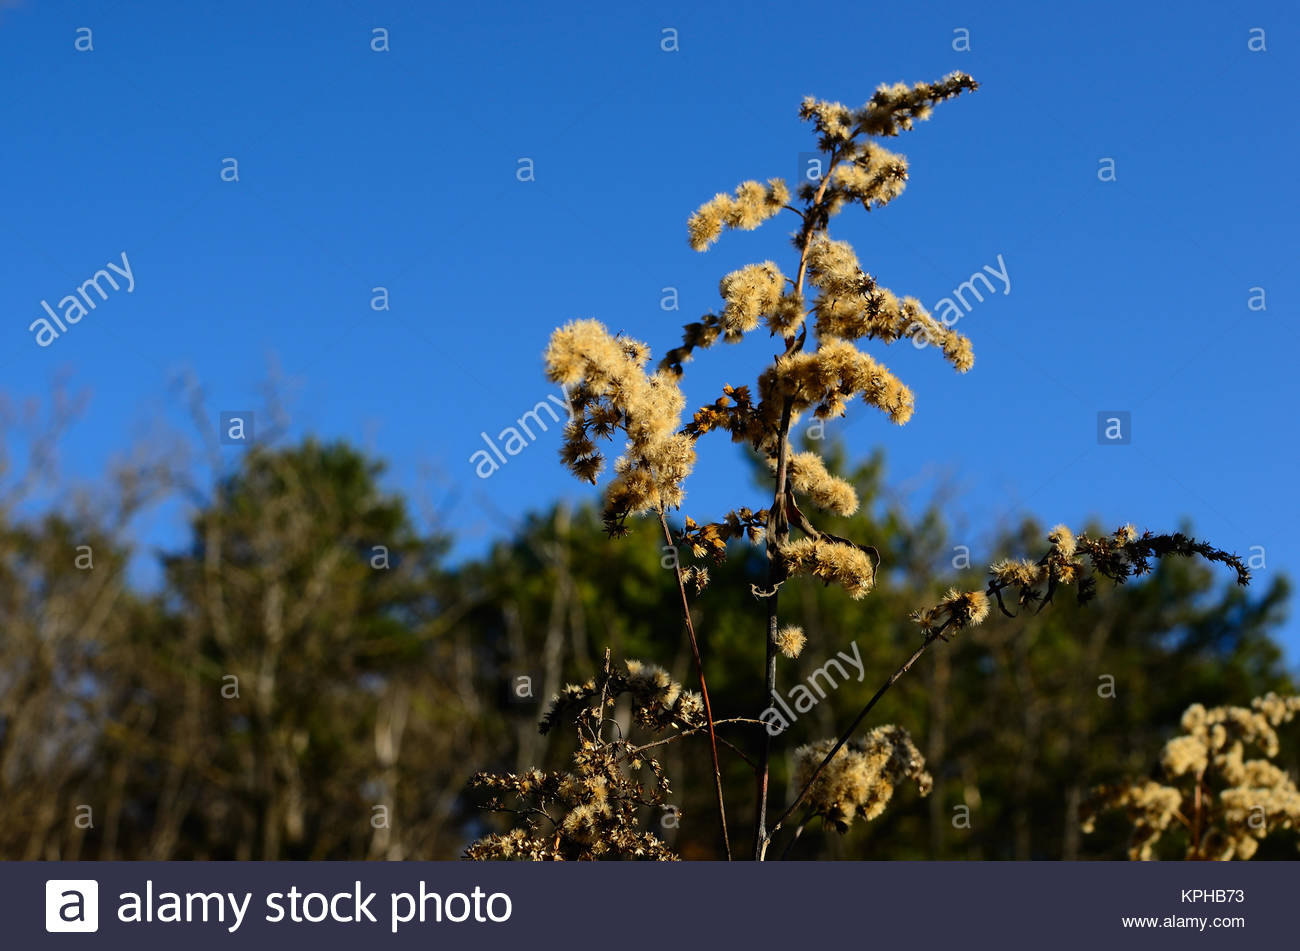 Farbenreich stock photos farbenreich stock images alamy for Strauch mit blauen bluten